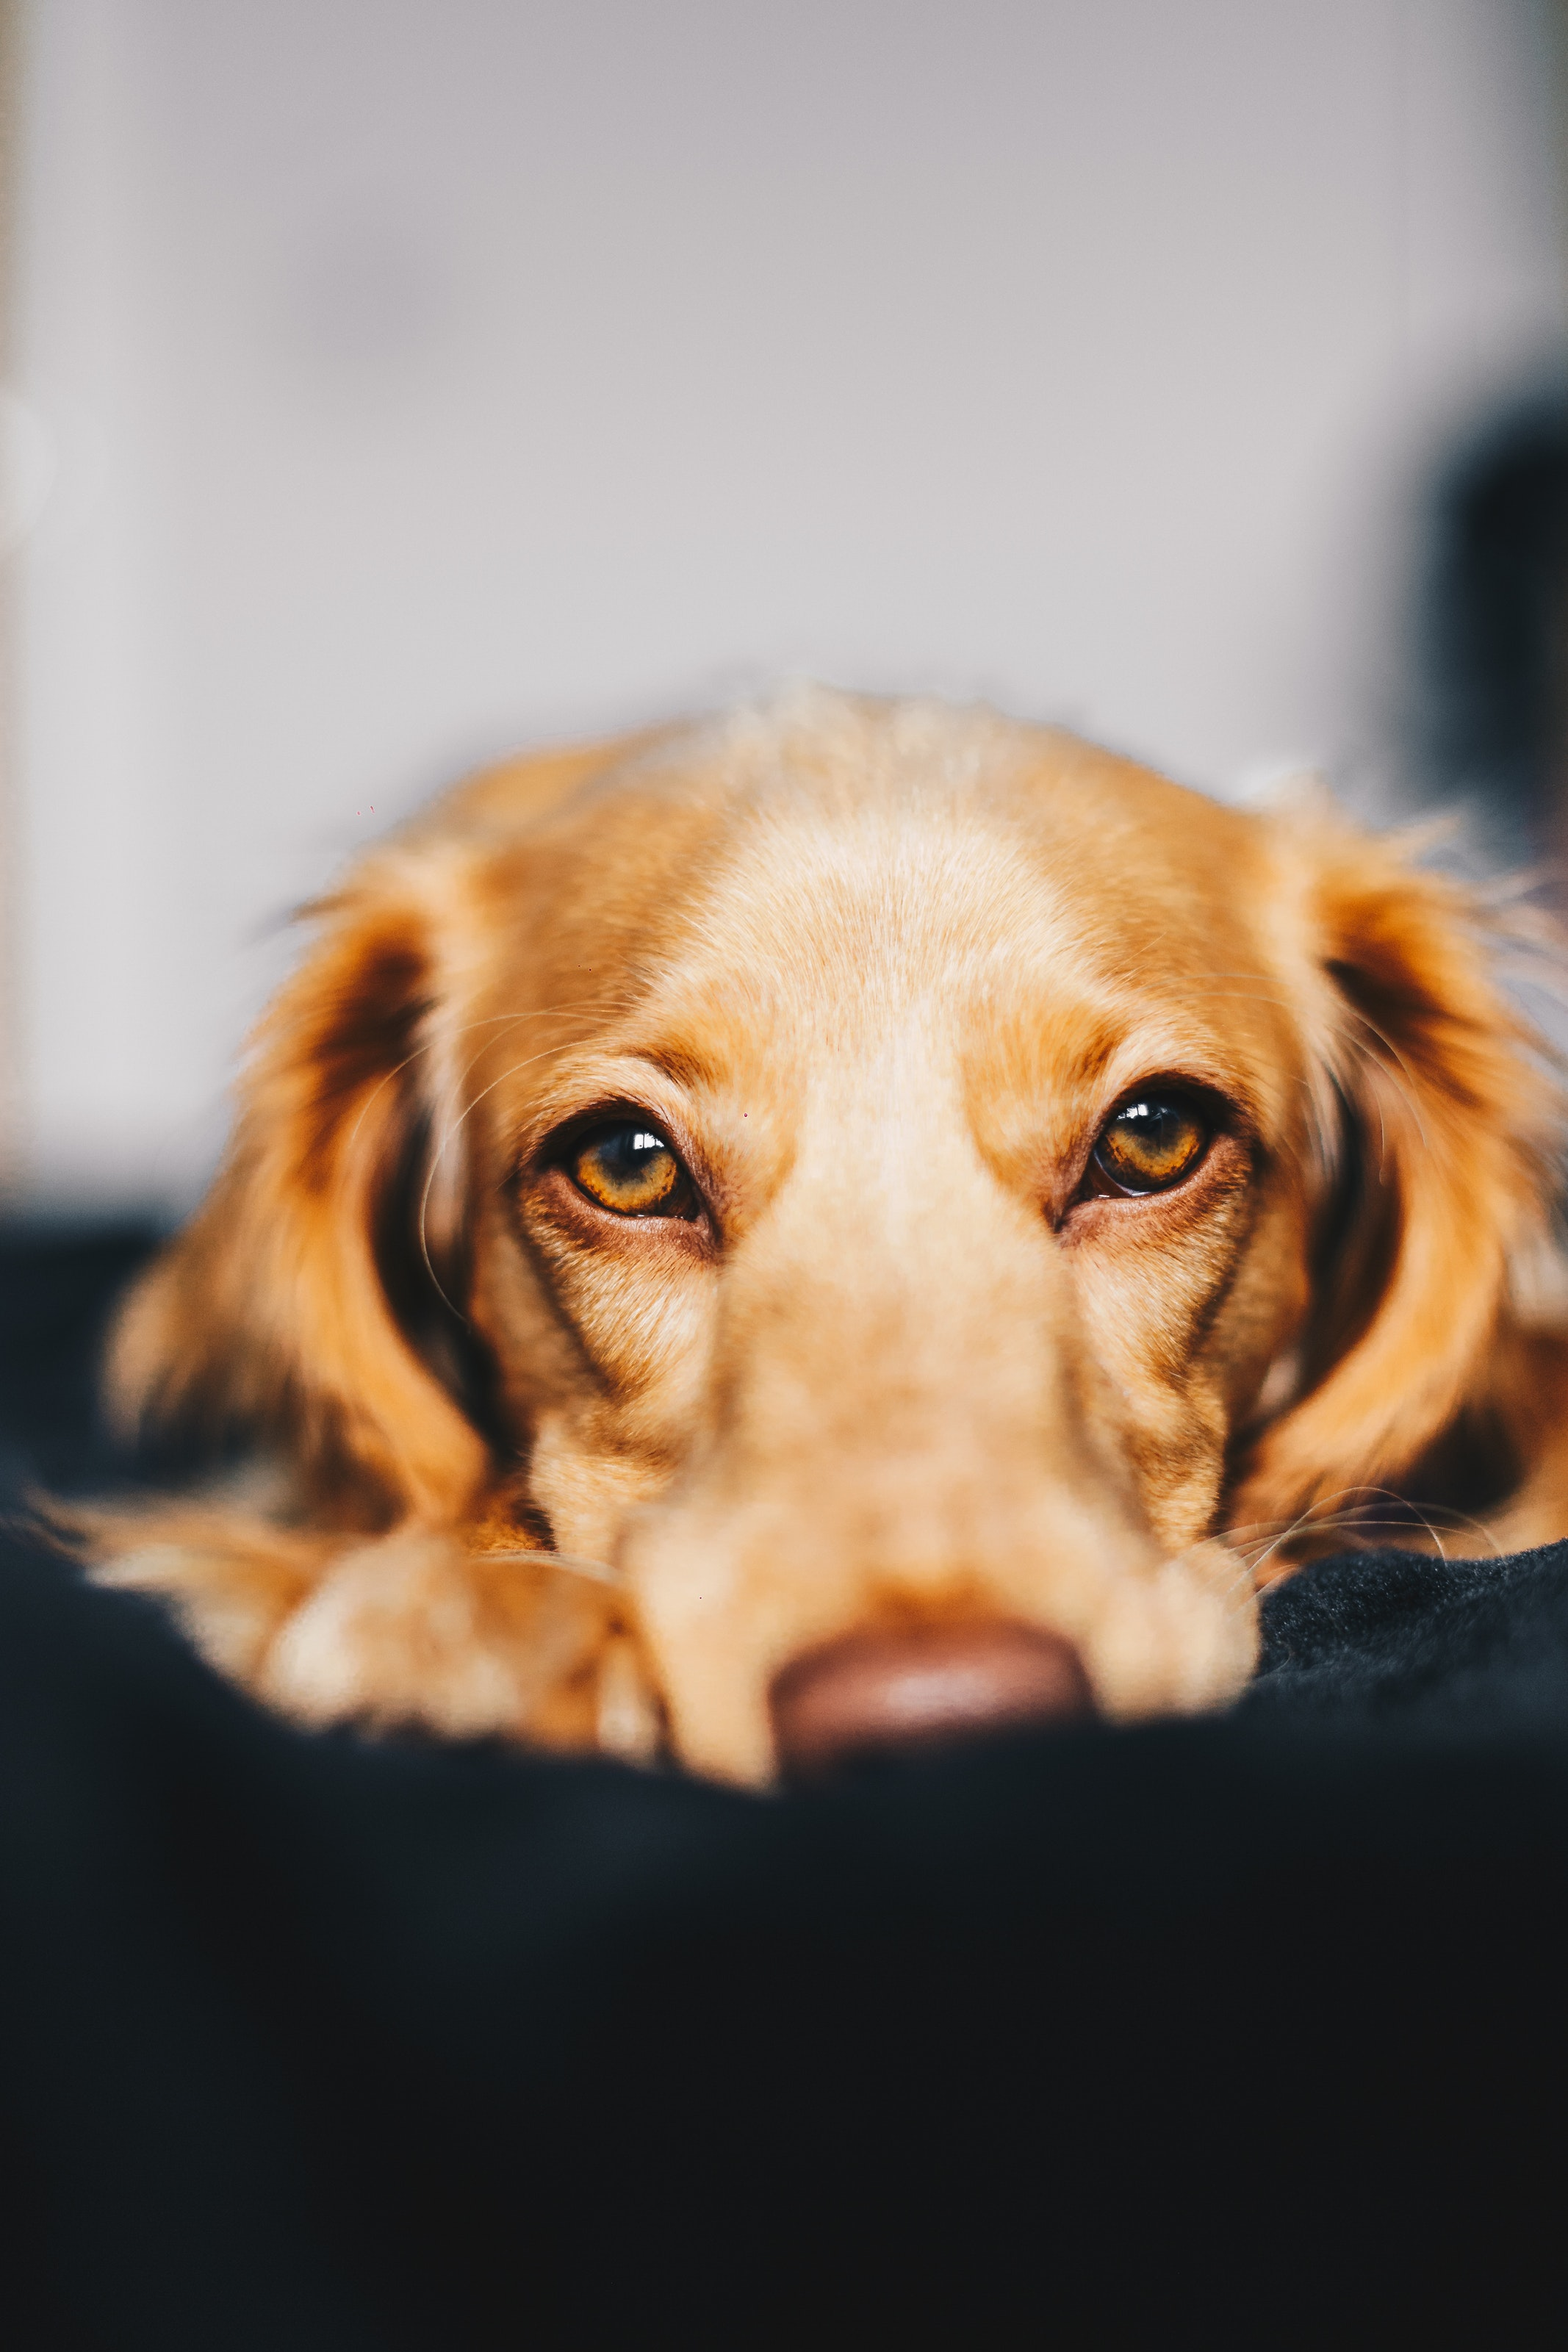 What causes a dog to cry?